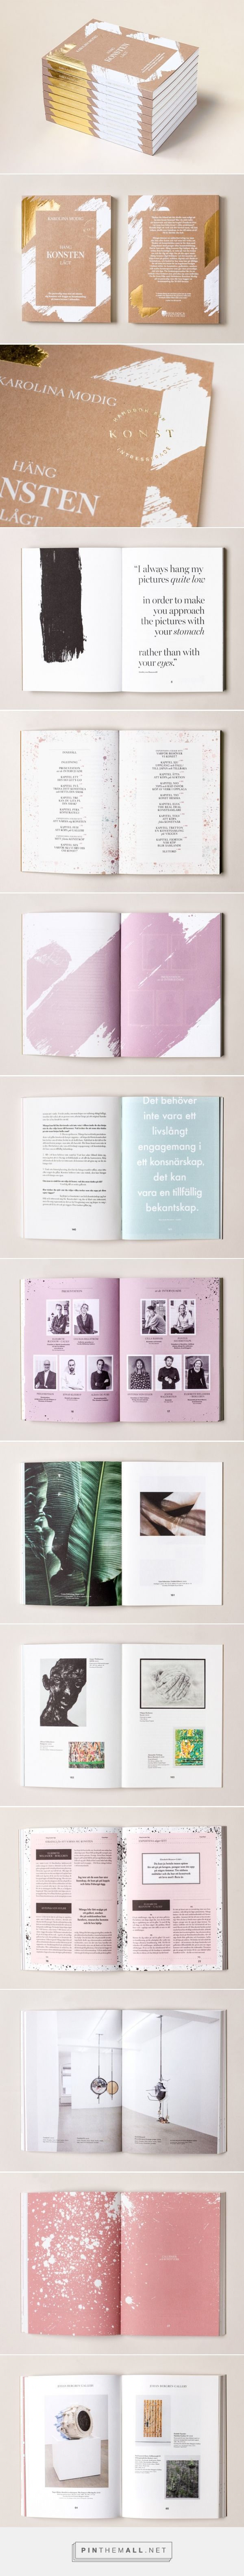 Hang Art Low: Book Design by Snask | Inspiration Grid | Design Inspiration... - a grouped images picture - Pin Them All